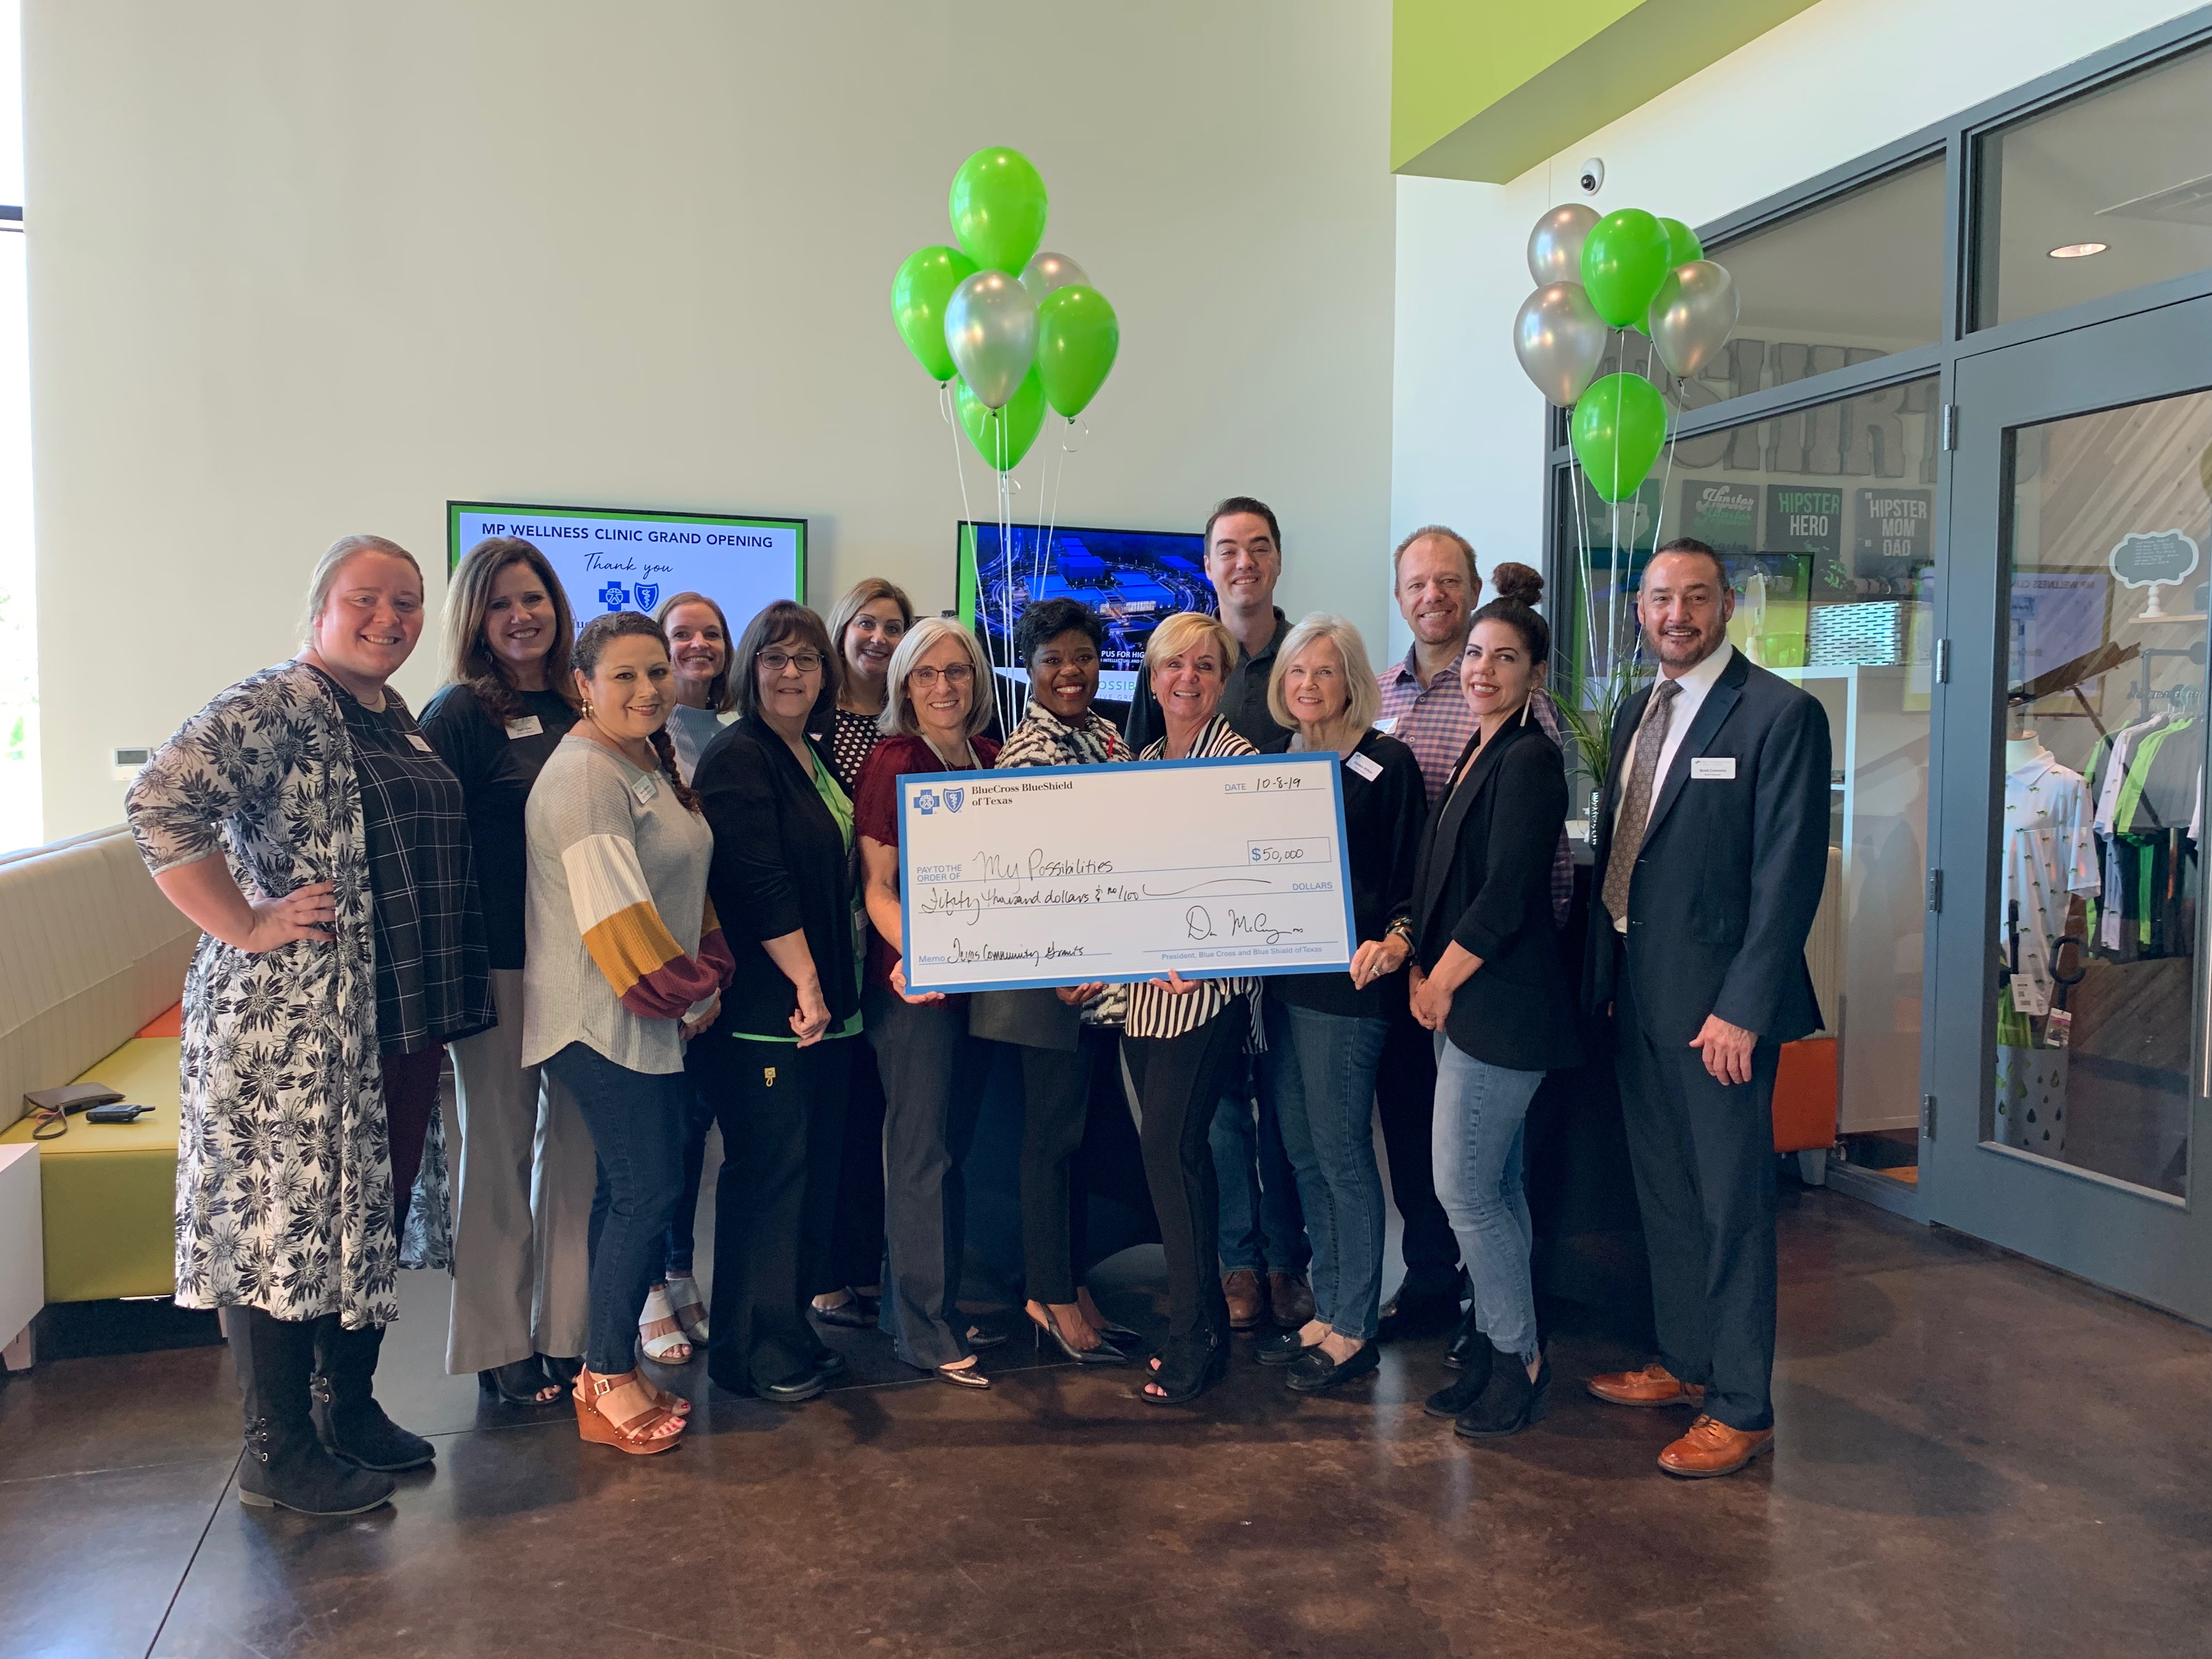 My Possibilities, a local vocational training center for adults with intellectual and/or developmental disabilities, has announced it was awarded a $50,000 grant by Blue Cross and Blue Shield of Texas (BCBSTX)